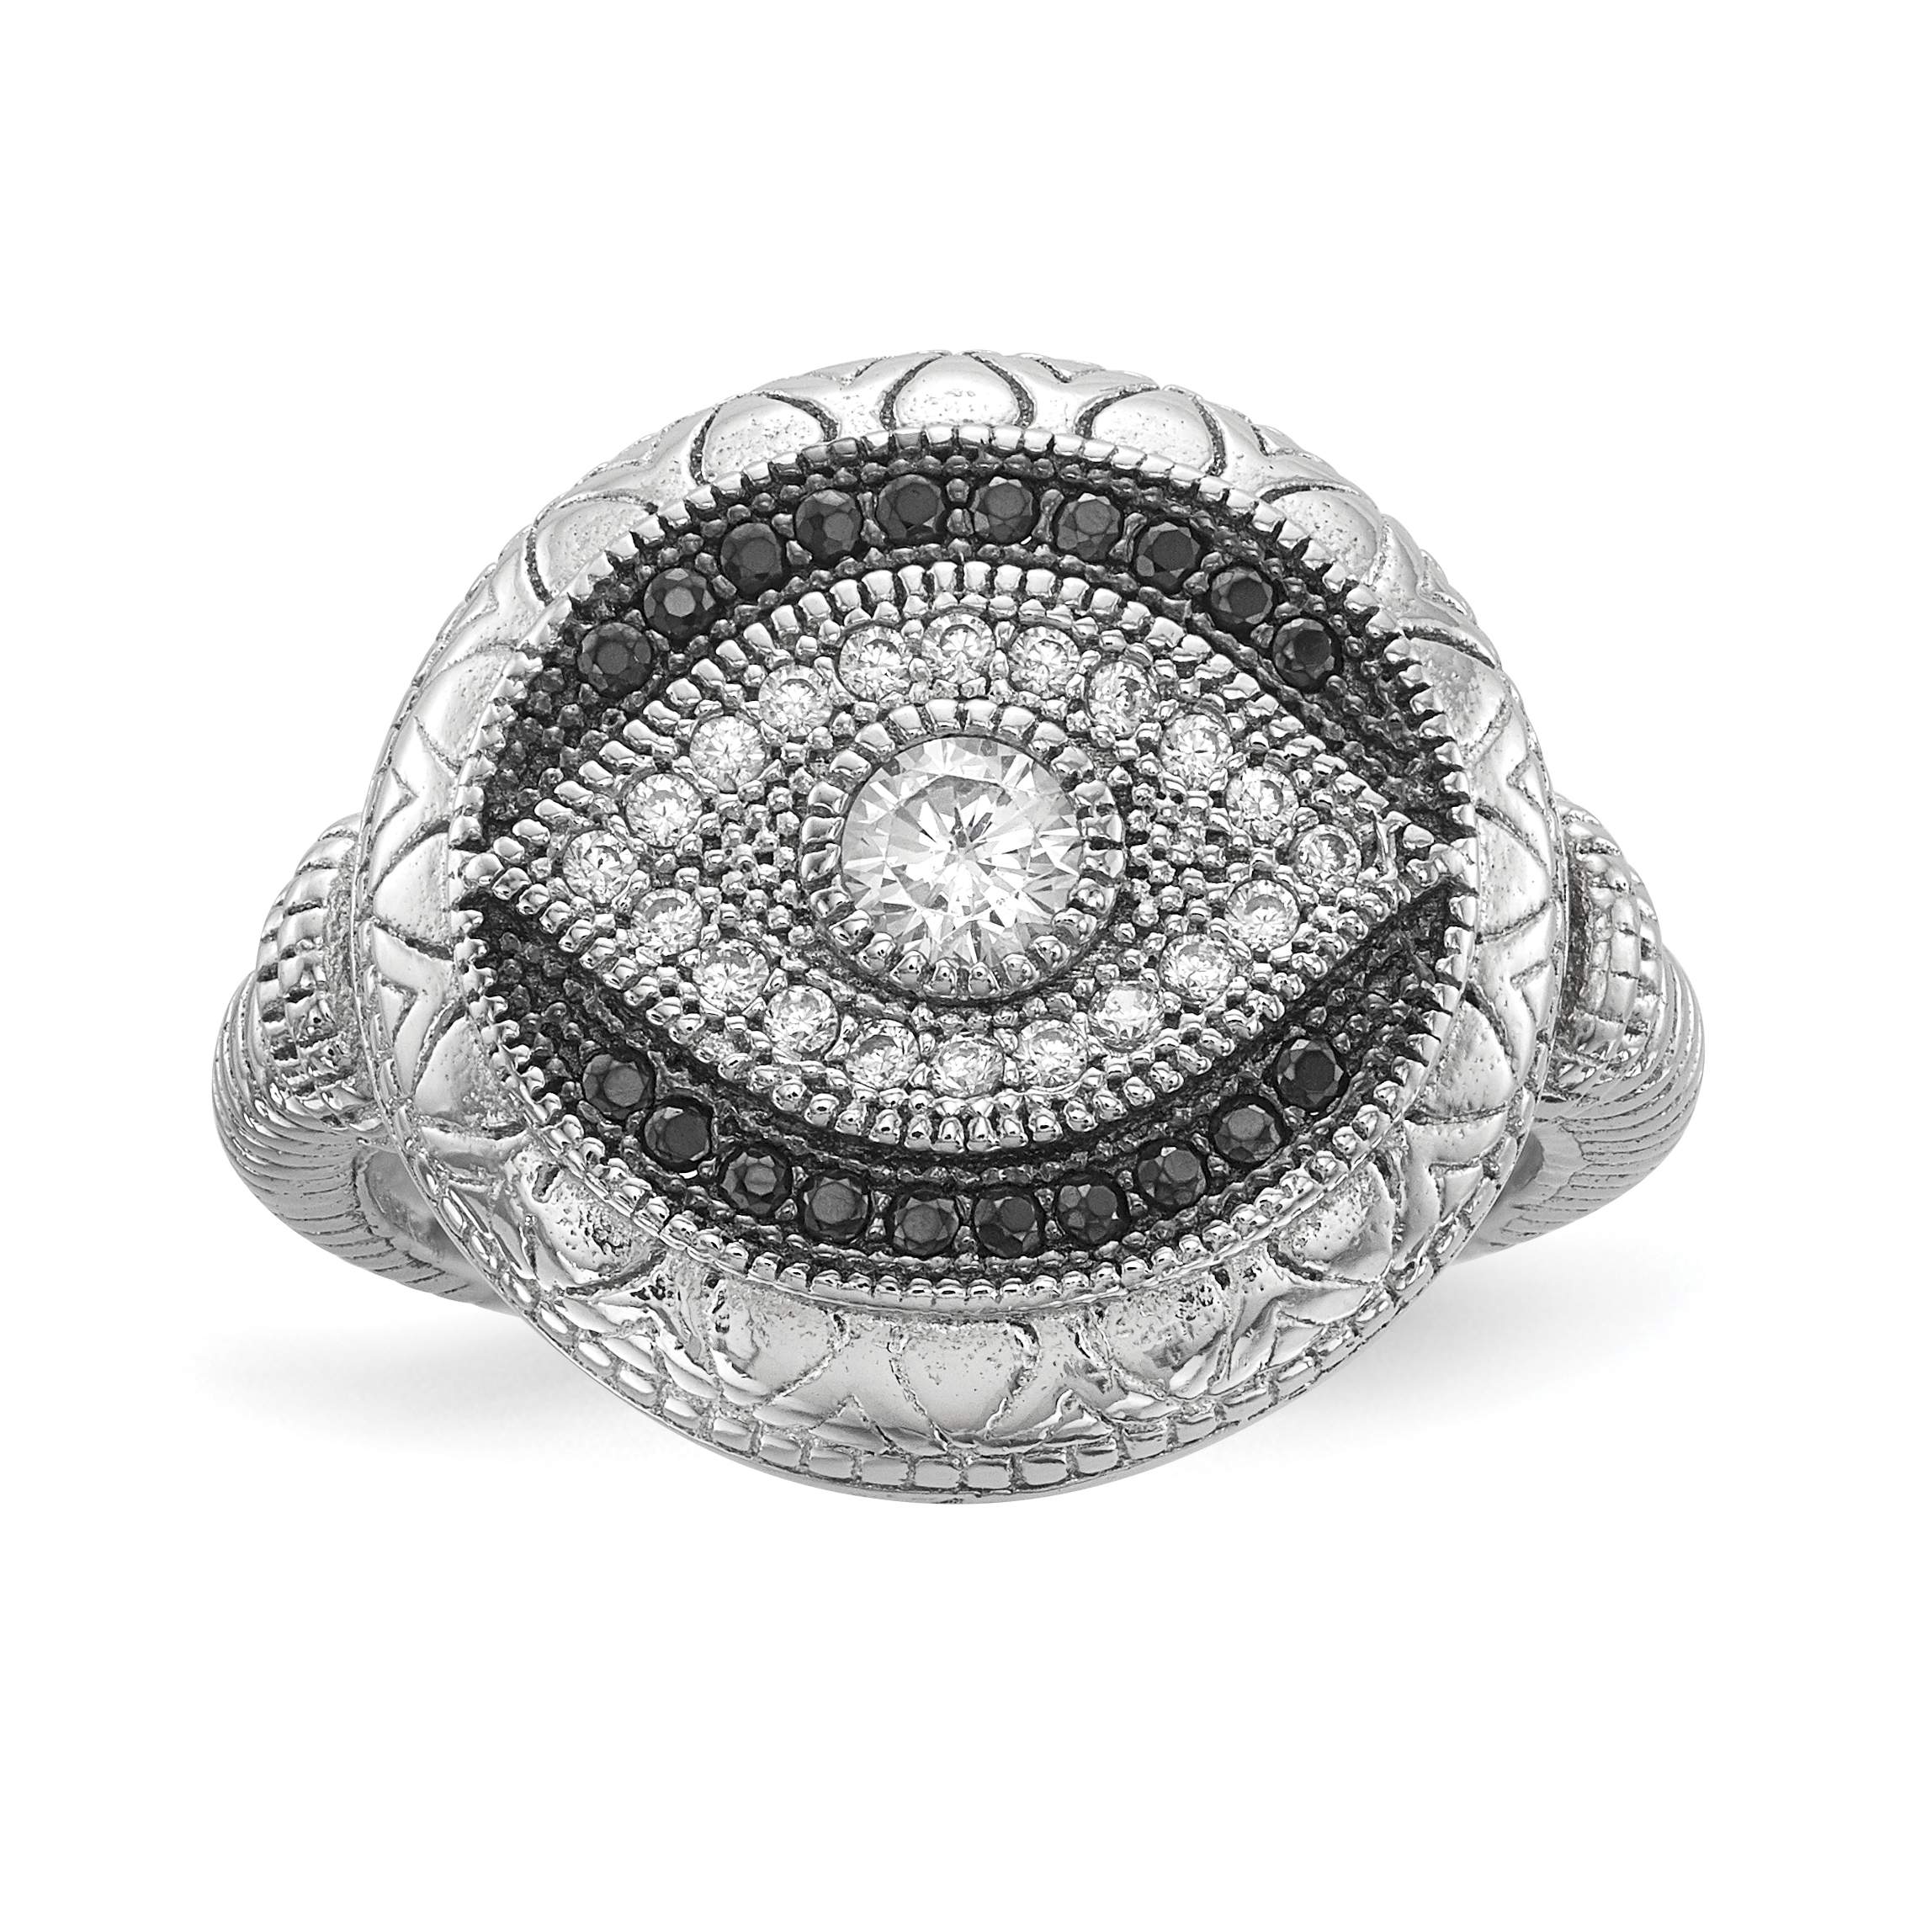 b142386e542fc Details about 925 Sterling Silver Black White Cubic Zirconia Cz Evil Eye  Band Ring Size 8.00